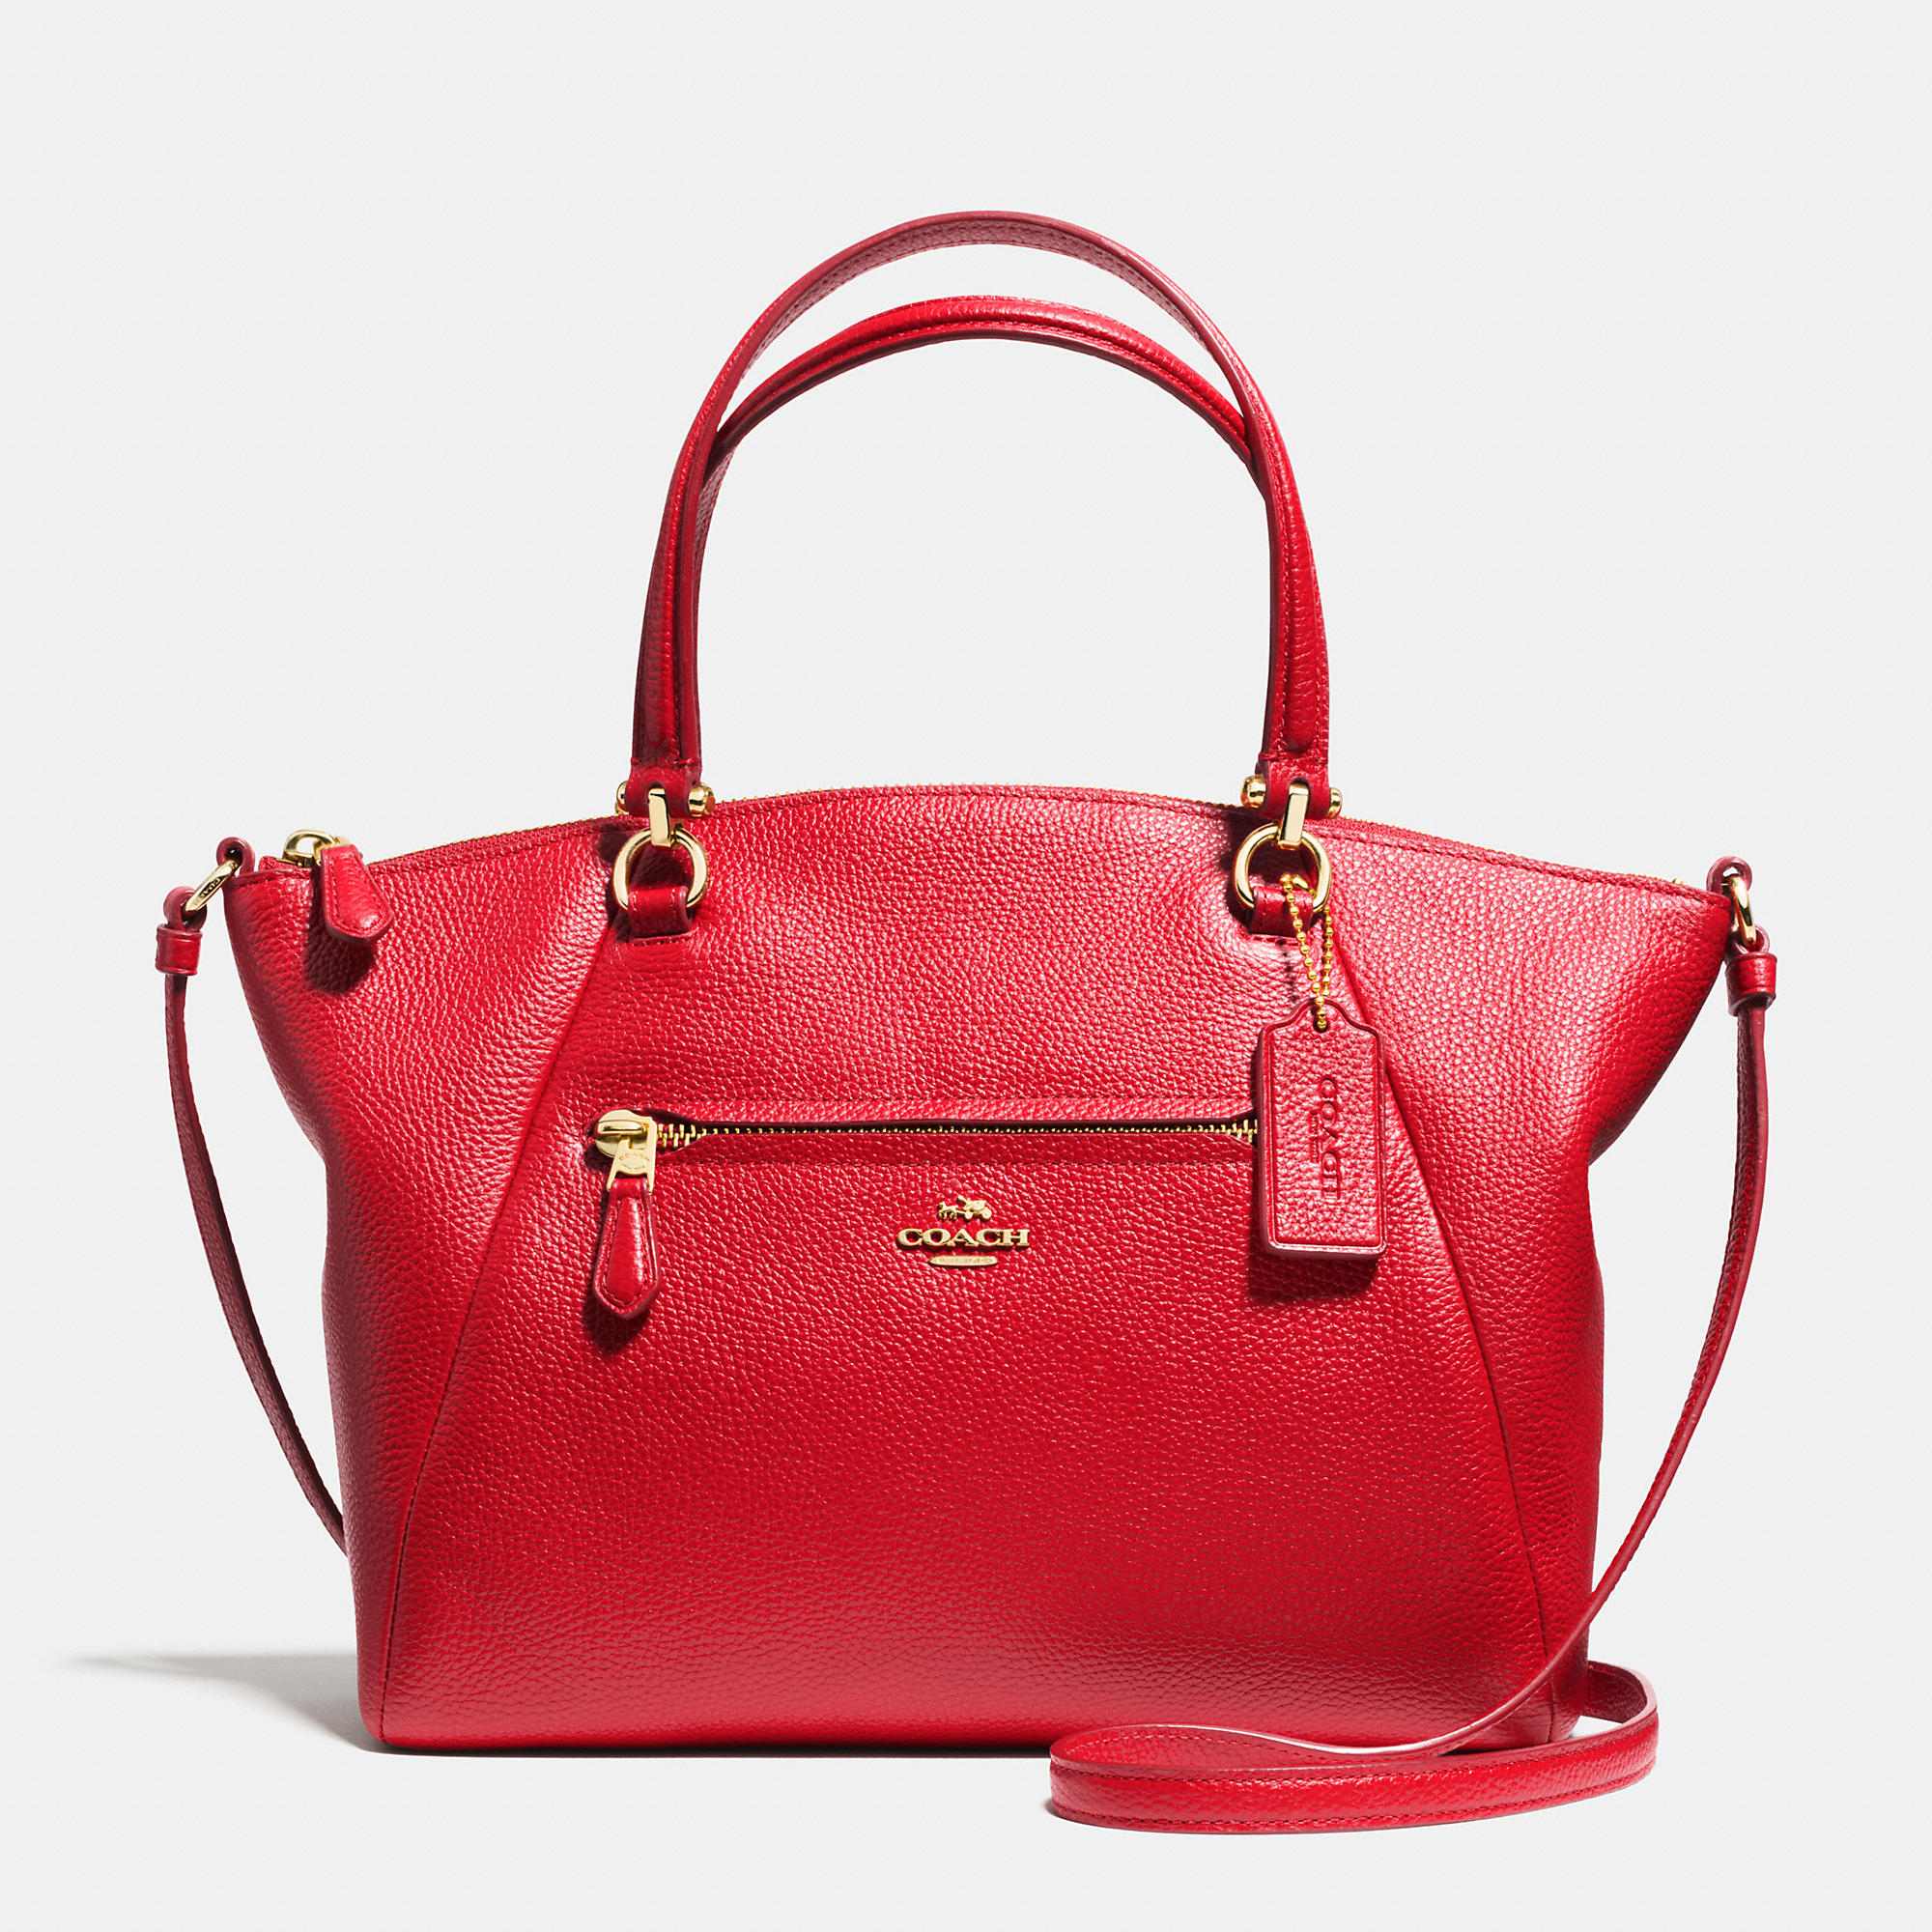 a019142ef ... best price lyst coach prairie satchel in pebble leather in red 5a37a  5675f